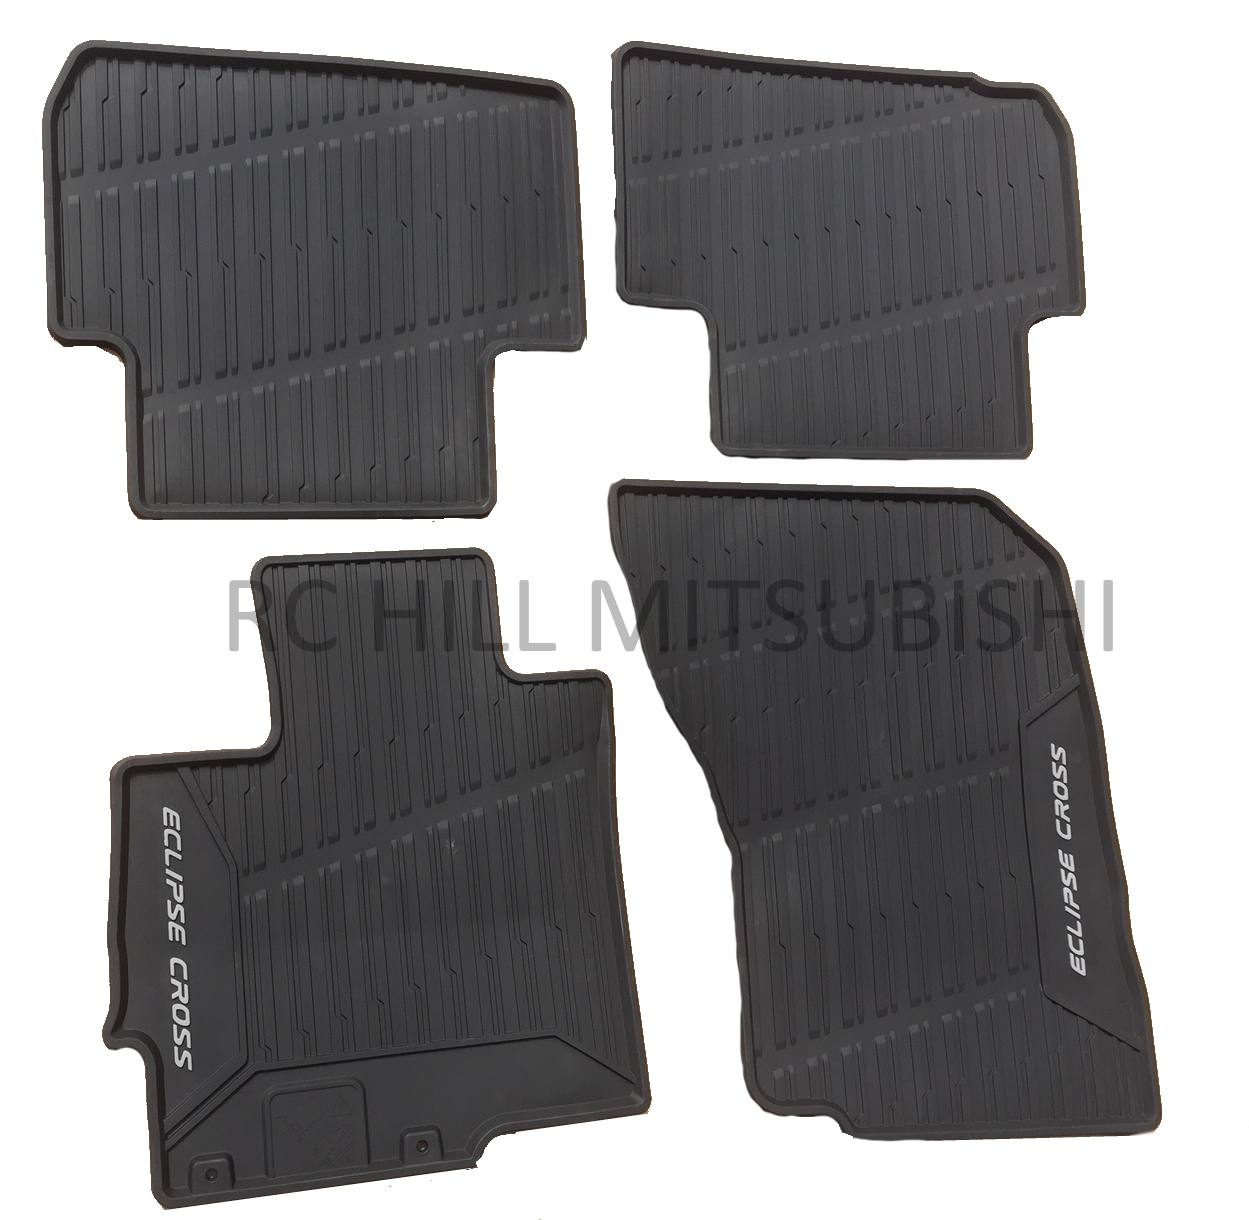 MZ314979 ECLIPSE CROSS ALL WEATHER MATS